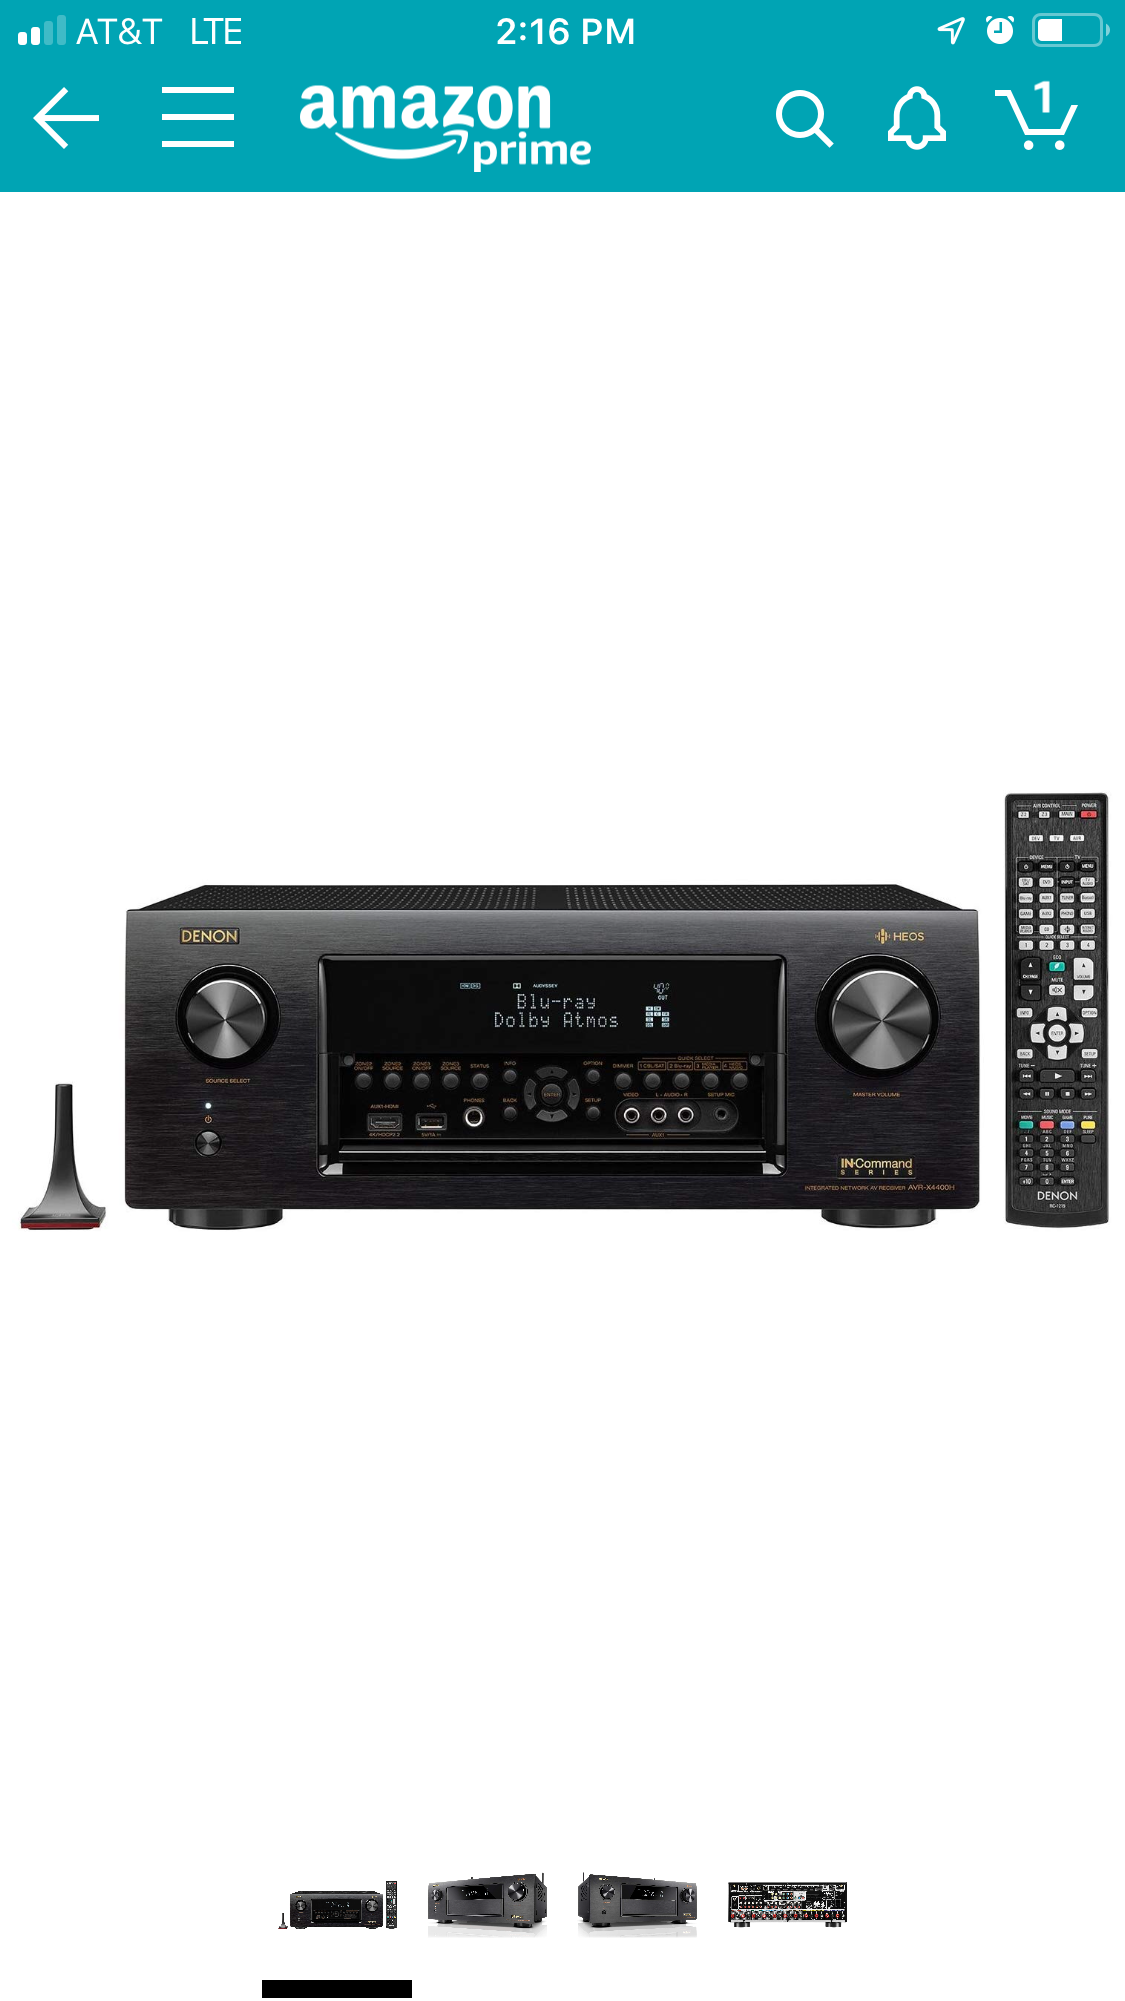 Upgrading from Denon AVR-X2000, Advice Sought